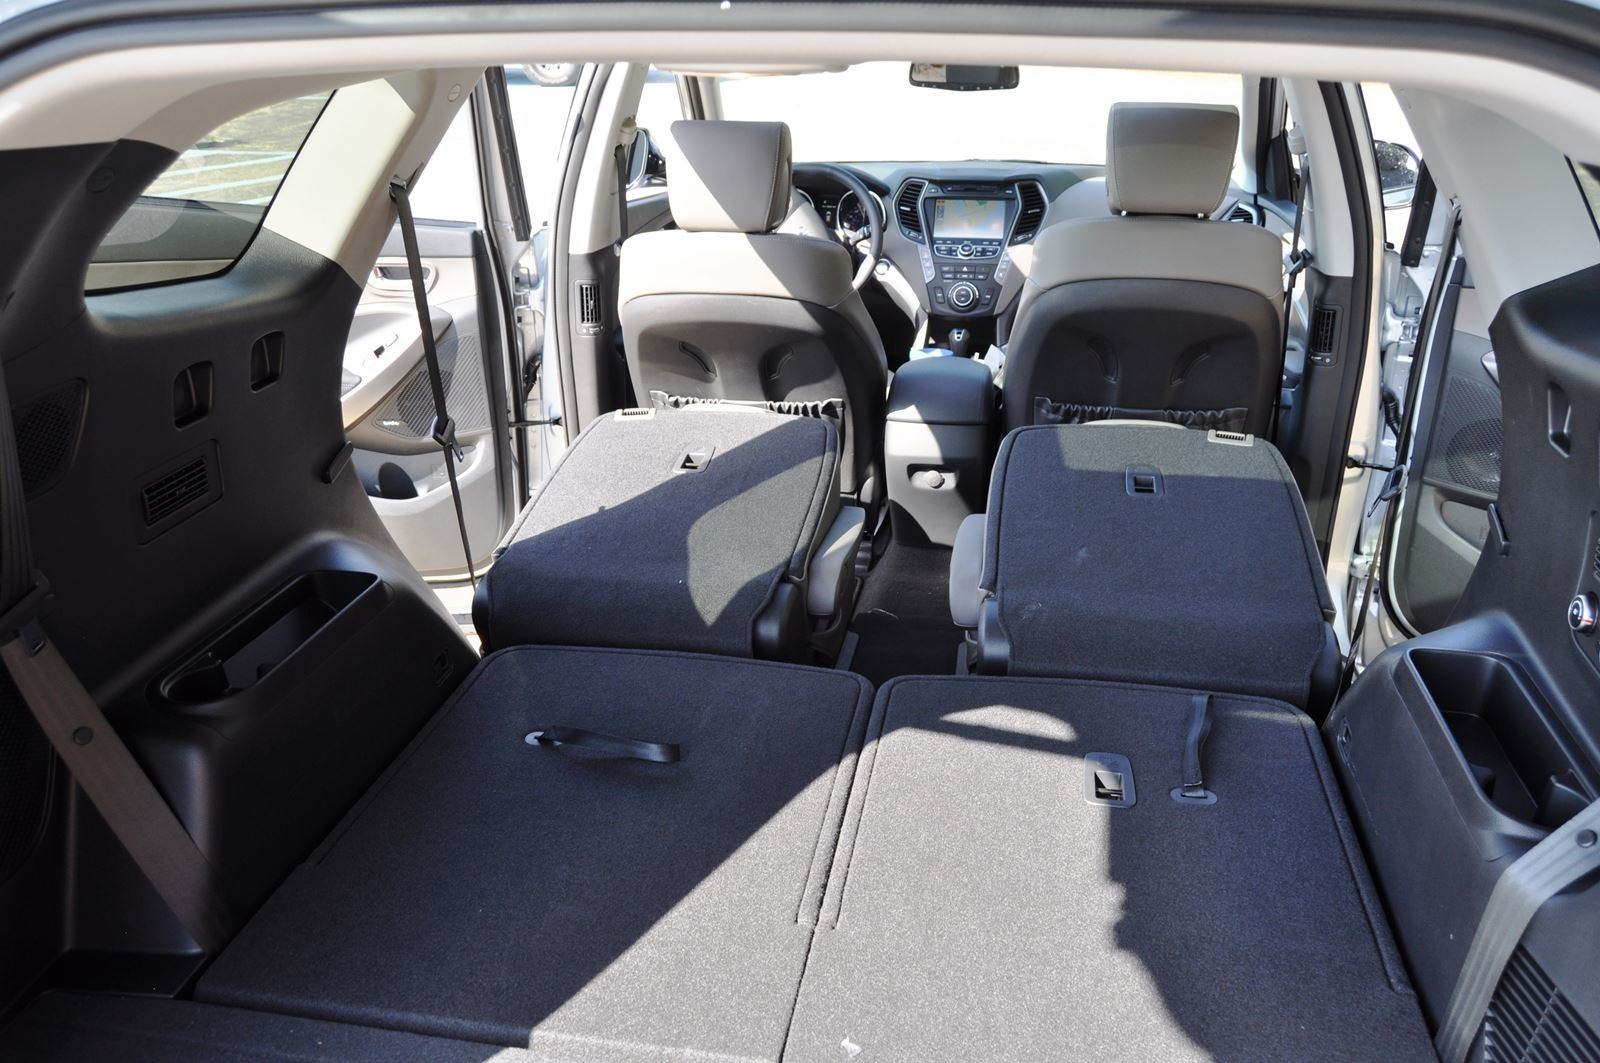 2015 Hyundai Santa Fe LWB Ultimate - Interior Photos 17